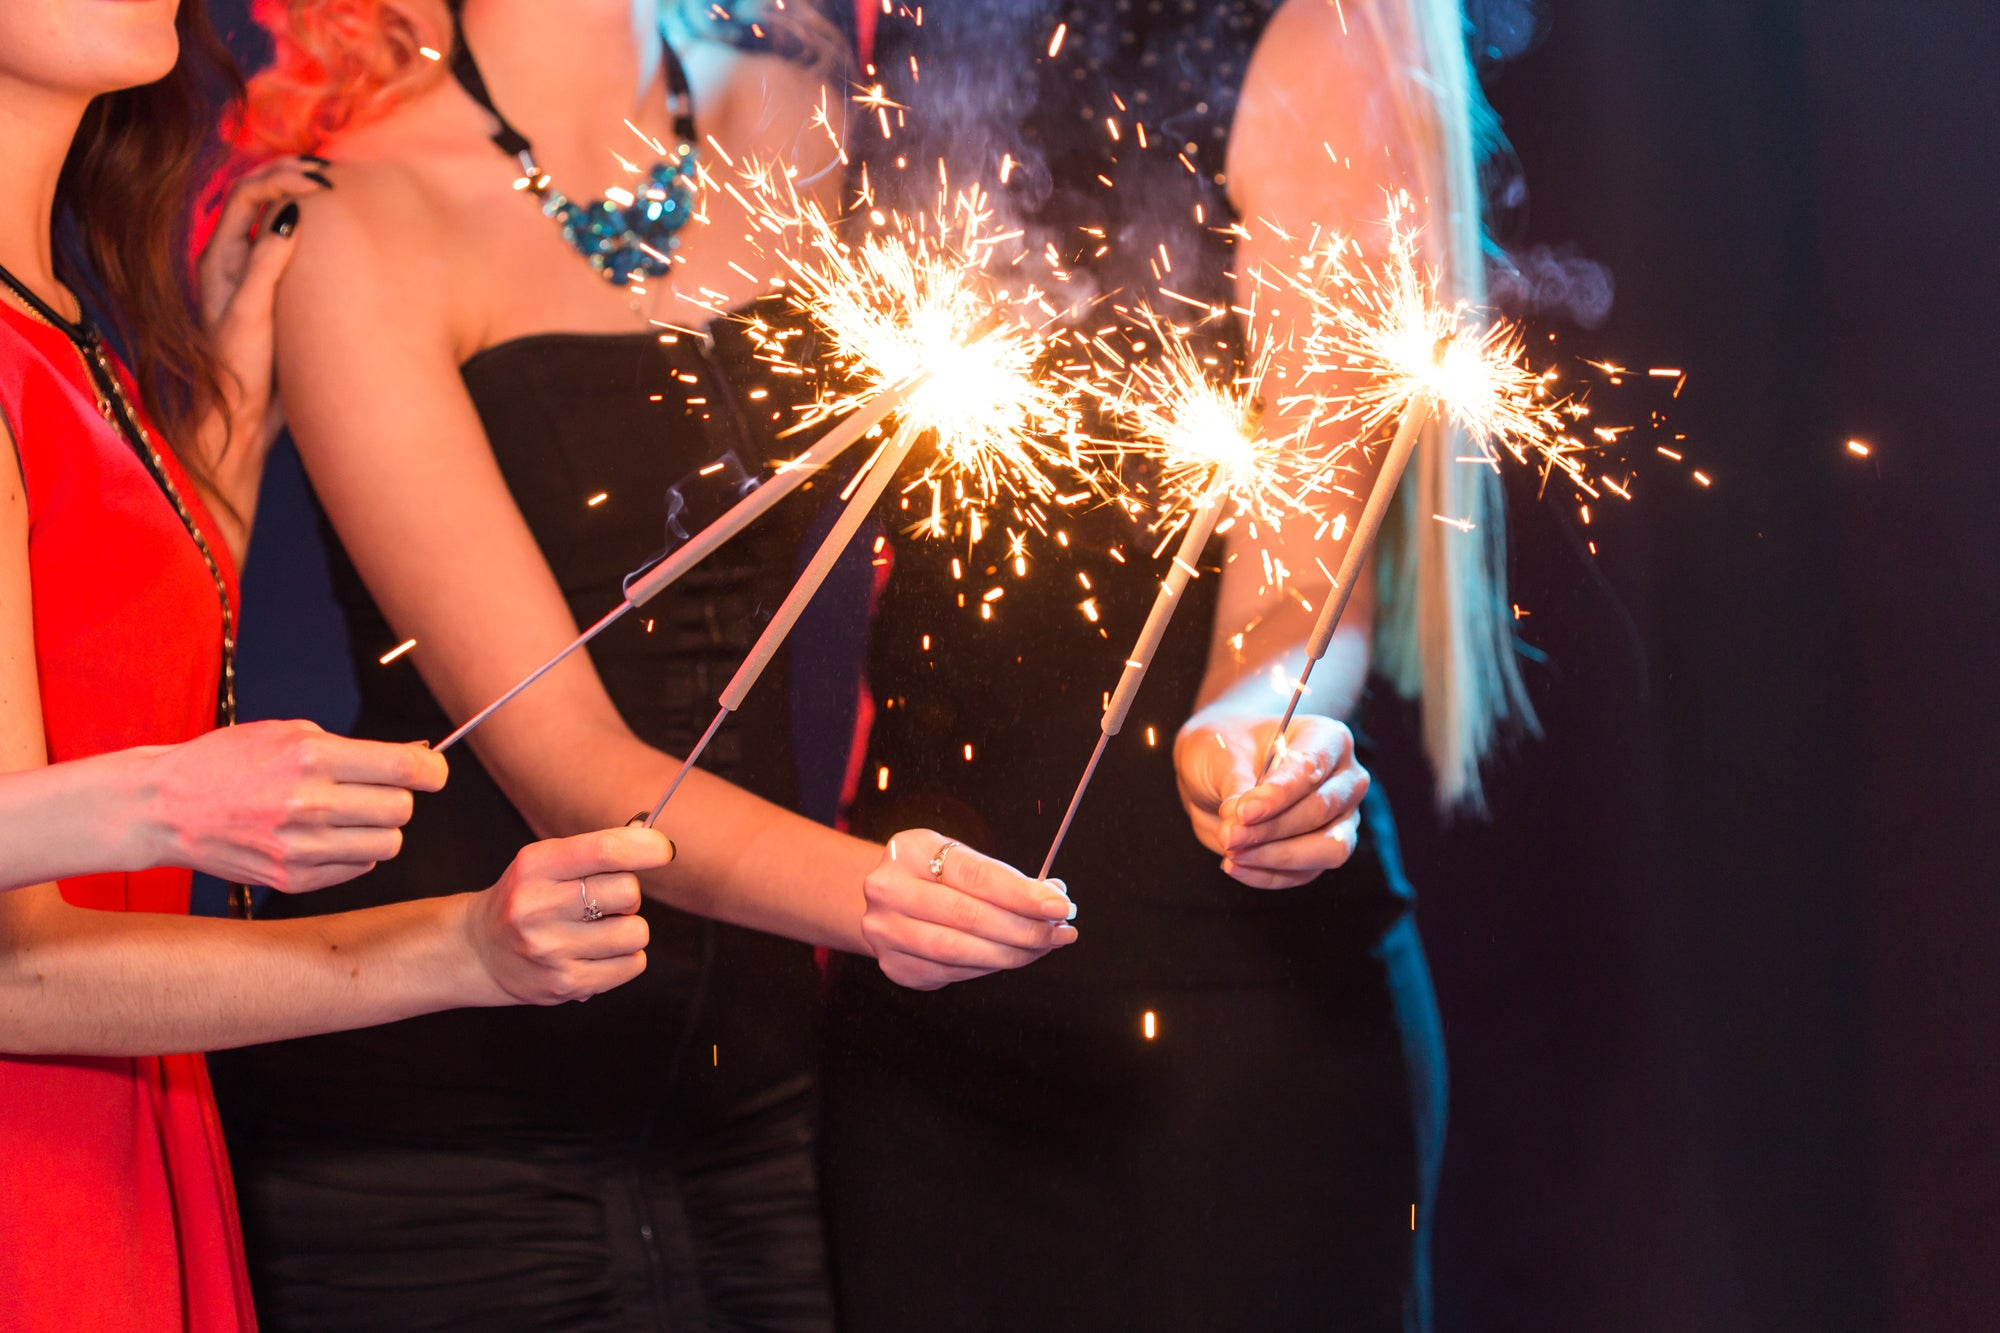 group of ladies enjoying night party events lighting sparklers